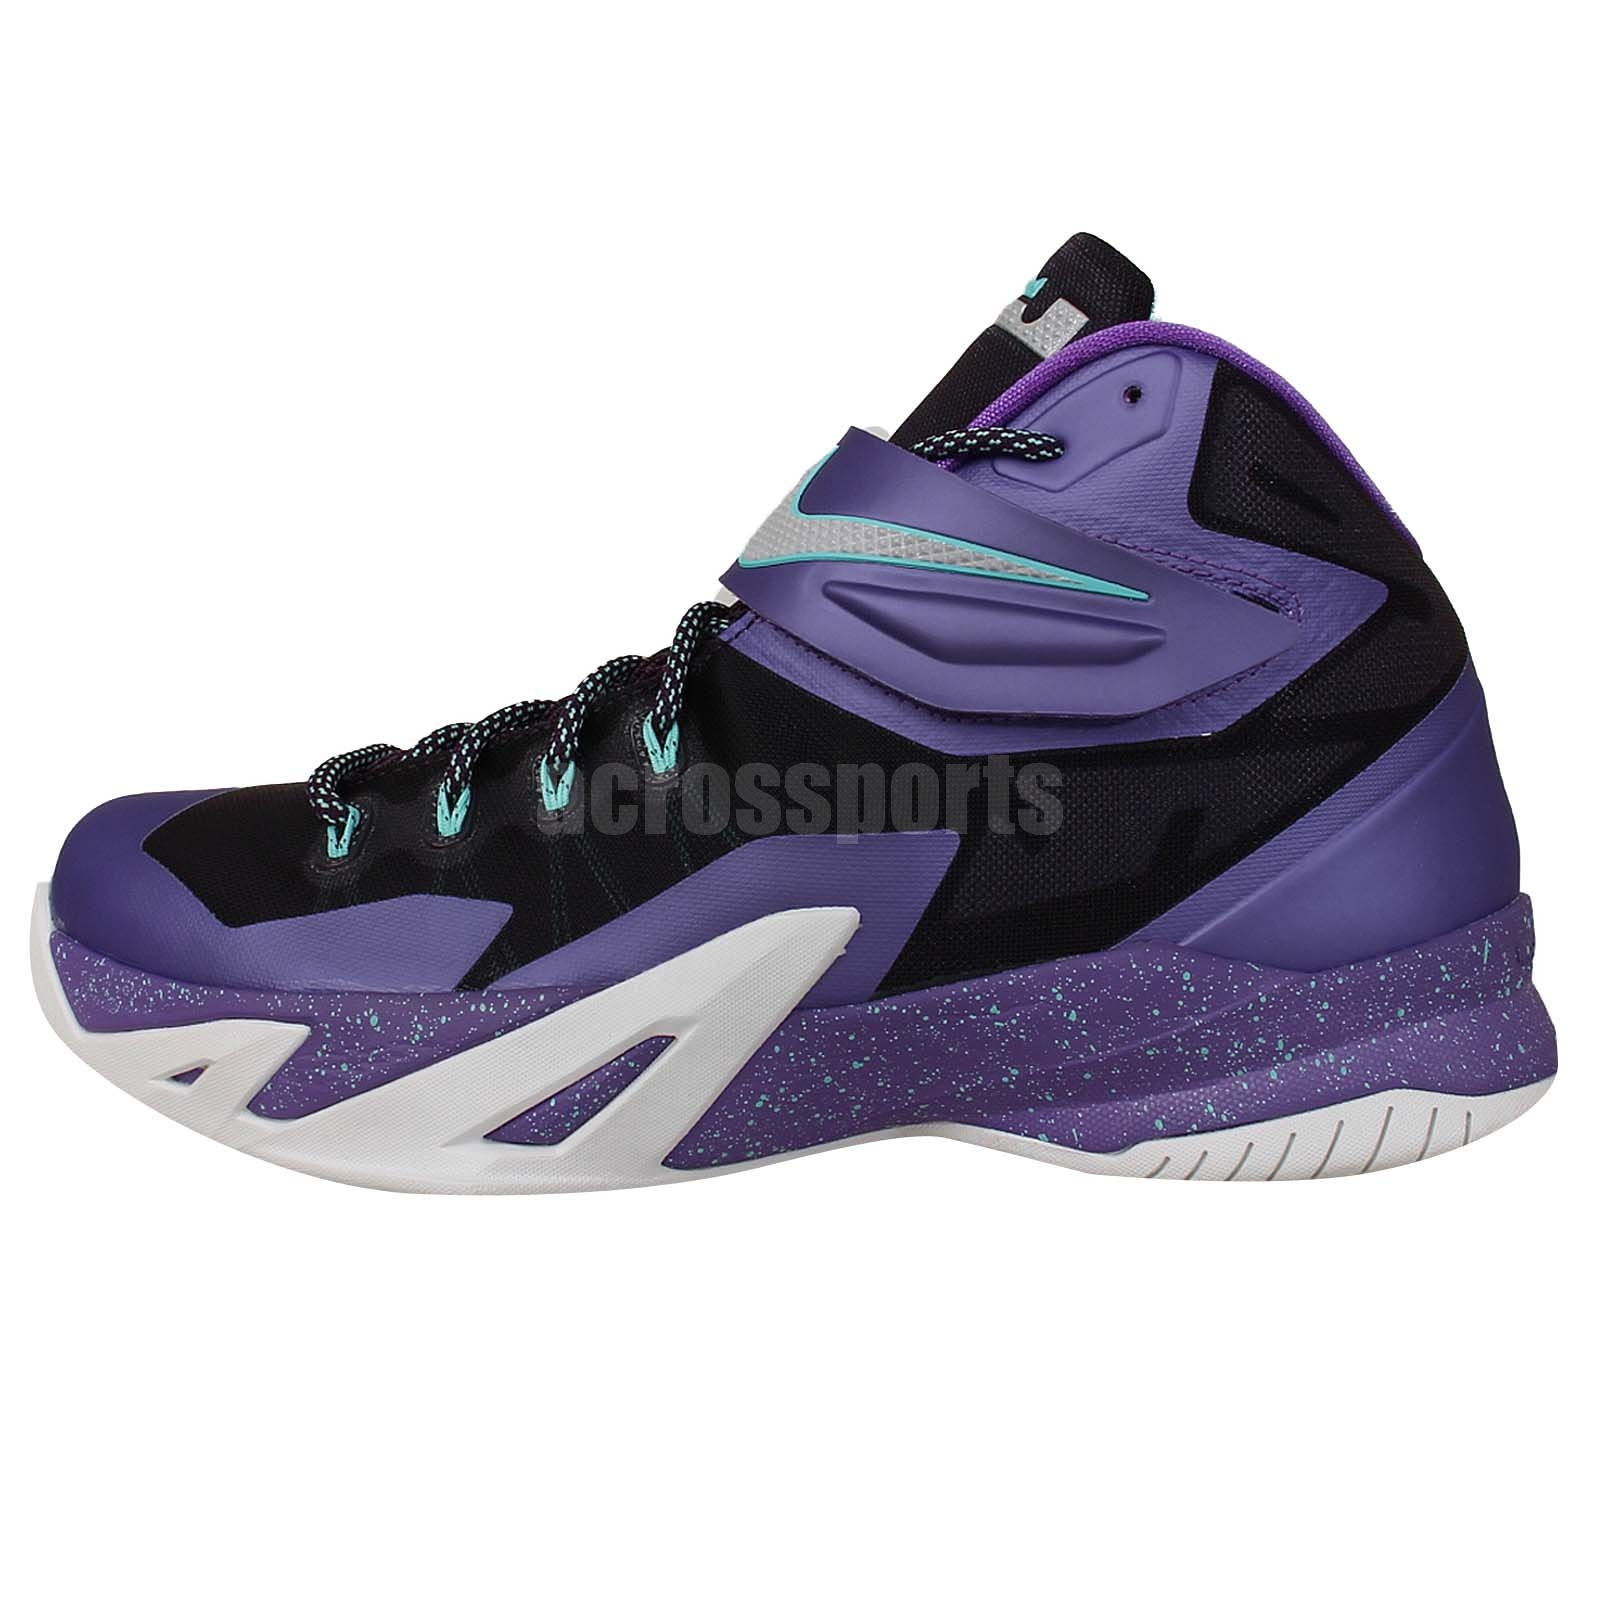 the gallery for gt nike shoes 2014 basketball lebron james